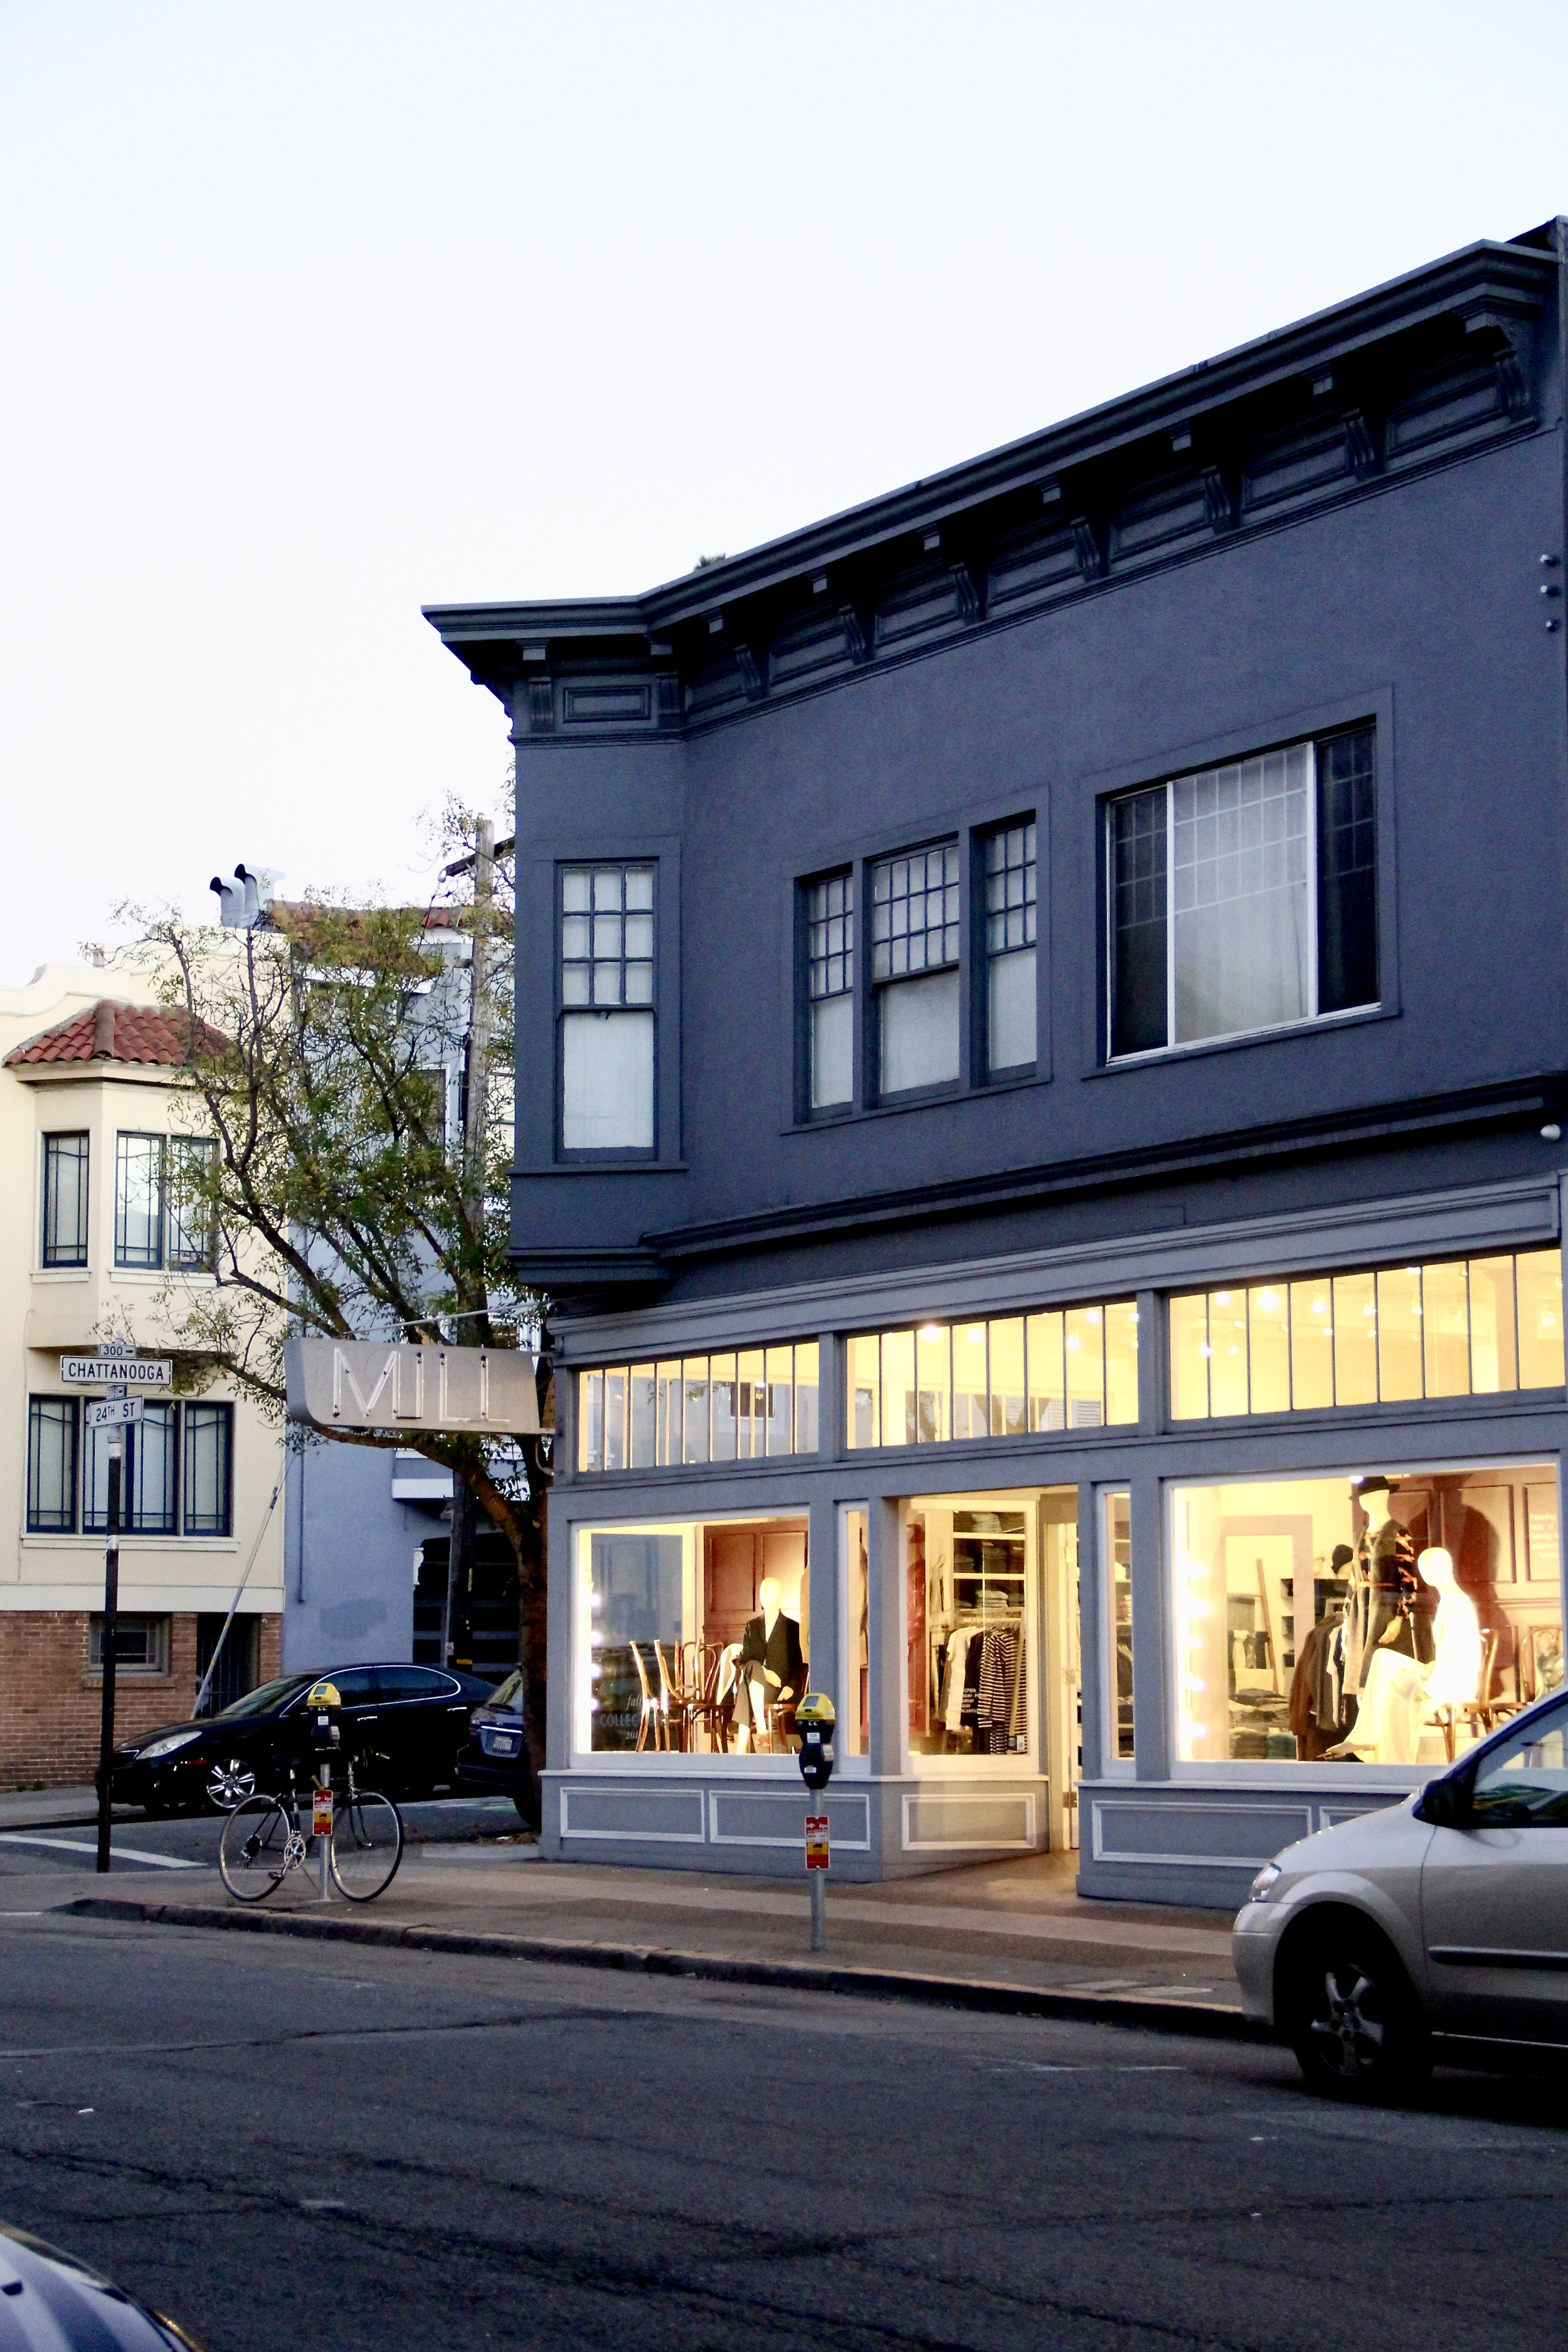 Mill Mercantile on 24th Street in Noe Valley, San Francisco | Beyond Ordinary Guides